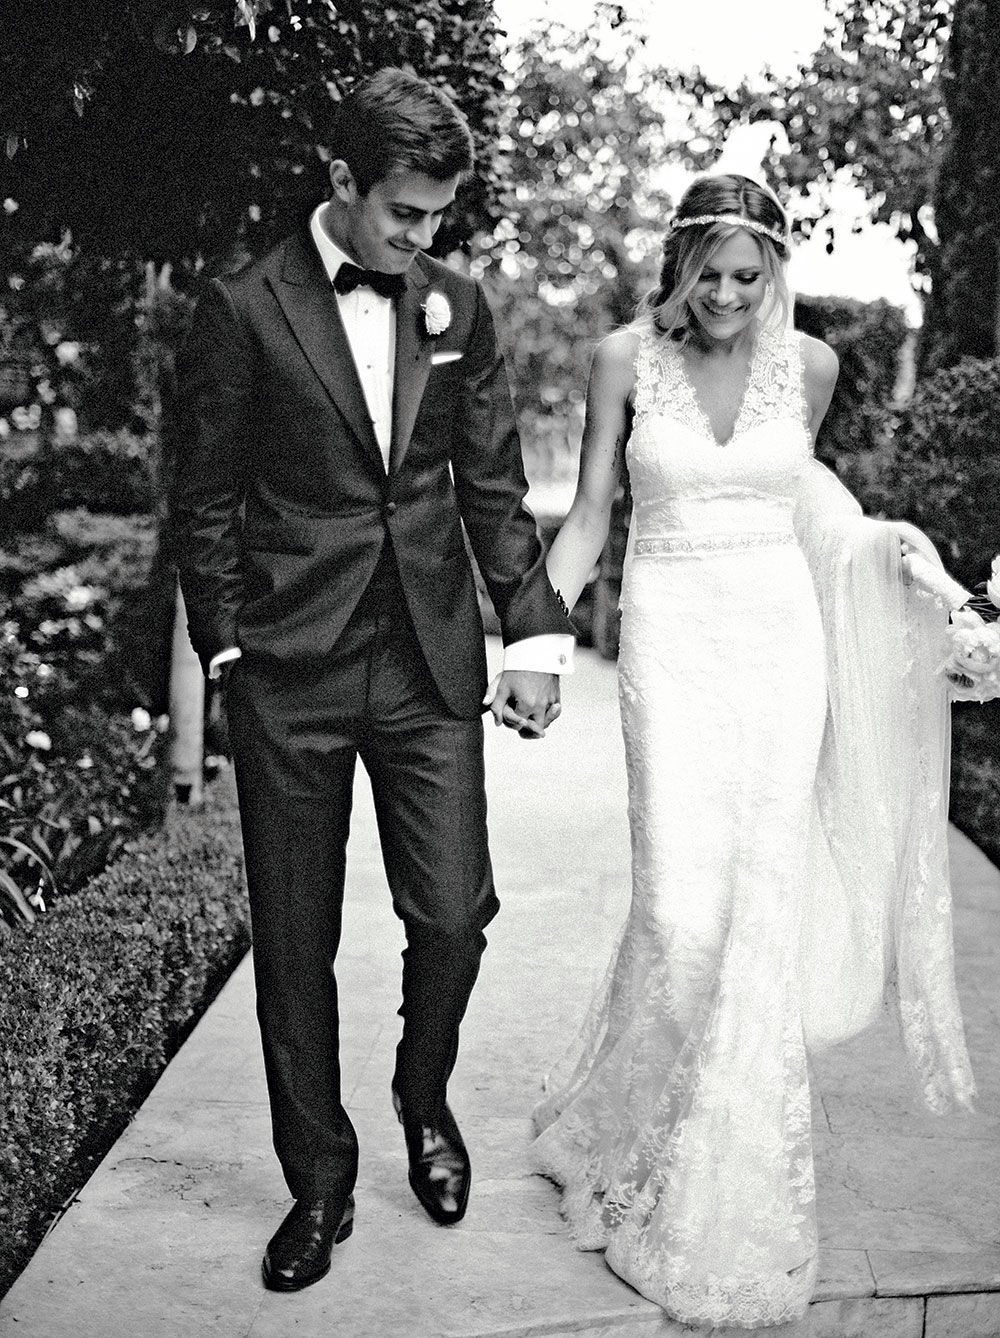 For good luck, the bride—in a Maria Elena headpiece with Monique Lhuillier gown and belt. #weddings